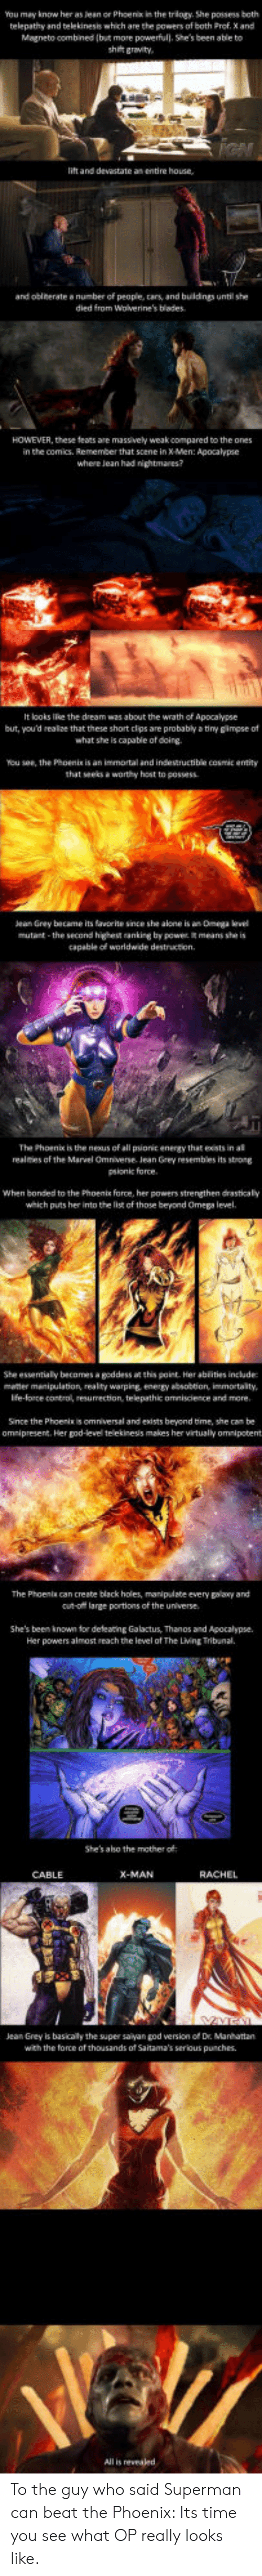 jean grey: You mey know her as lean or Phoenix in the triogy. She possess beth  telepathy and telekinesis which are the powers of both Prof. X and  Magneto combined (but more powerfull. She's been able to  shi gravity  lift and devastate as entire house  and obinerate a number of people, cars and buldngs until she  died from Wolverine's blades  HOWEVER, these teats are massively weak compared to the ones  in the comics. Remember that scene in X Men: Apocalypse  where lean had nightmares?  It looks lice the dream was about the wrath of Apocalypse  but, you'd realze that these short clps are probably a tiny gimpse of  what she is capable of doing  You see, the Phoenis is an immortal and indestructible cosmic entity  that seeksa worthy host to possess  eaGrey became its fate since she alone is an Omega el  mutant -the second highet anking by powe t means she is  capable of worldwide destruction.  The Phoenik is the neaus of all pionit enengy that eists in al  realnies of the Marvel Omniverse. Jean Grey resembles its strong  psionic force  When bonded to the Phoents force, her powers strengthen drasticaly  which puts her into the list of those beyond Omega level  She essentially becomes a goddess at this point Her ablities include  metter menipulation, realty warping energy absobtion immortality,  Ife-lorce control, resumection, telepathic omniscience and more  Since the Phoenix is omniversal and exists beyond time, she can be  omnipresent. Her god-level telekinesis makes her virtualy omnipotent  The Phoenis can create black holes, manipulate every psany and  cu-oft large portions of the universe  She's been known for deleacing Galactus, Thanos and Apocalypse.  Her powers almost reach the level of The Lving Tribunal.  She's aho the mother of  CABLE  ean Grey is basicaly the super saiyan god version of Dr. Manhattan  with the force of thousands of Saitama's serious punches.  All is revealed To the guy who said Superman can beat the Phoenix: Its time you see what OP reall